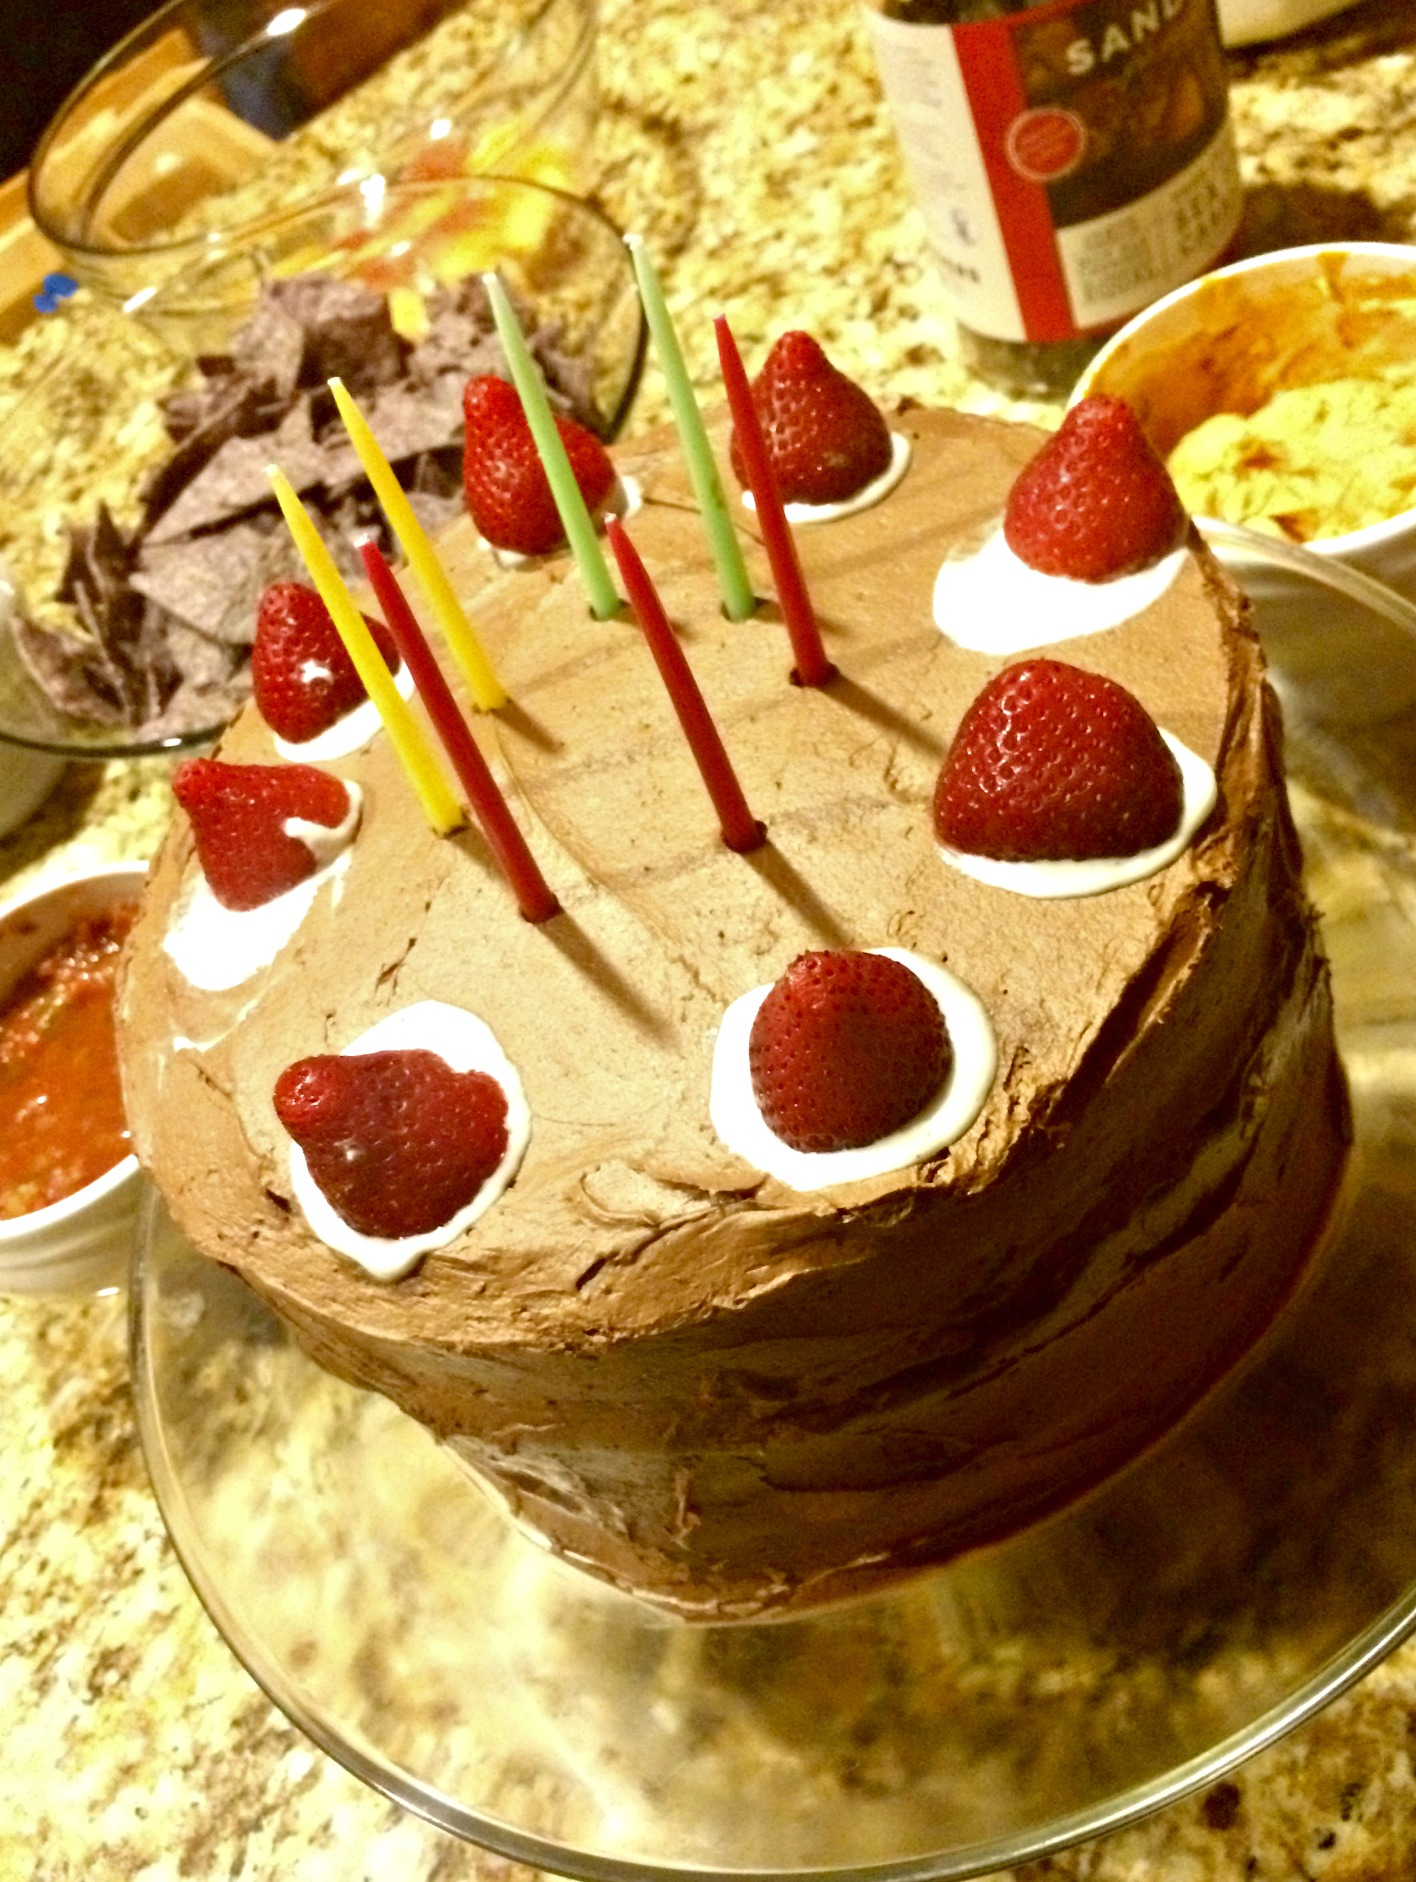 chocolate cake topped in strawberries